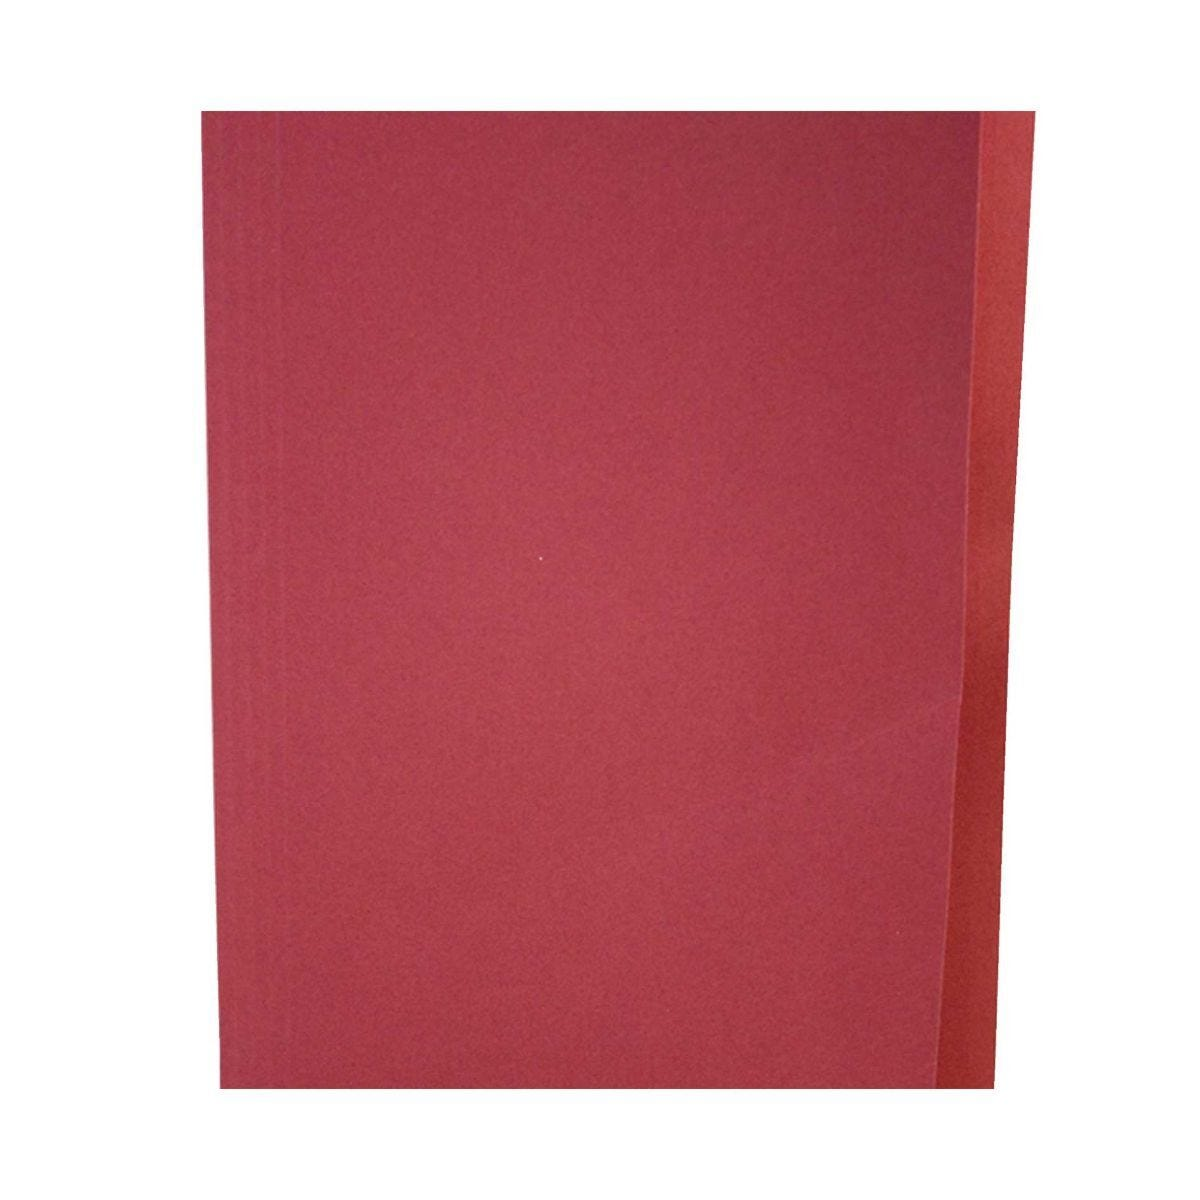 Square Cut Folders Foolscap Pack of 100 Red